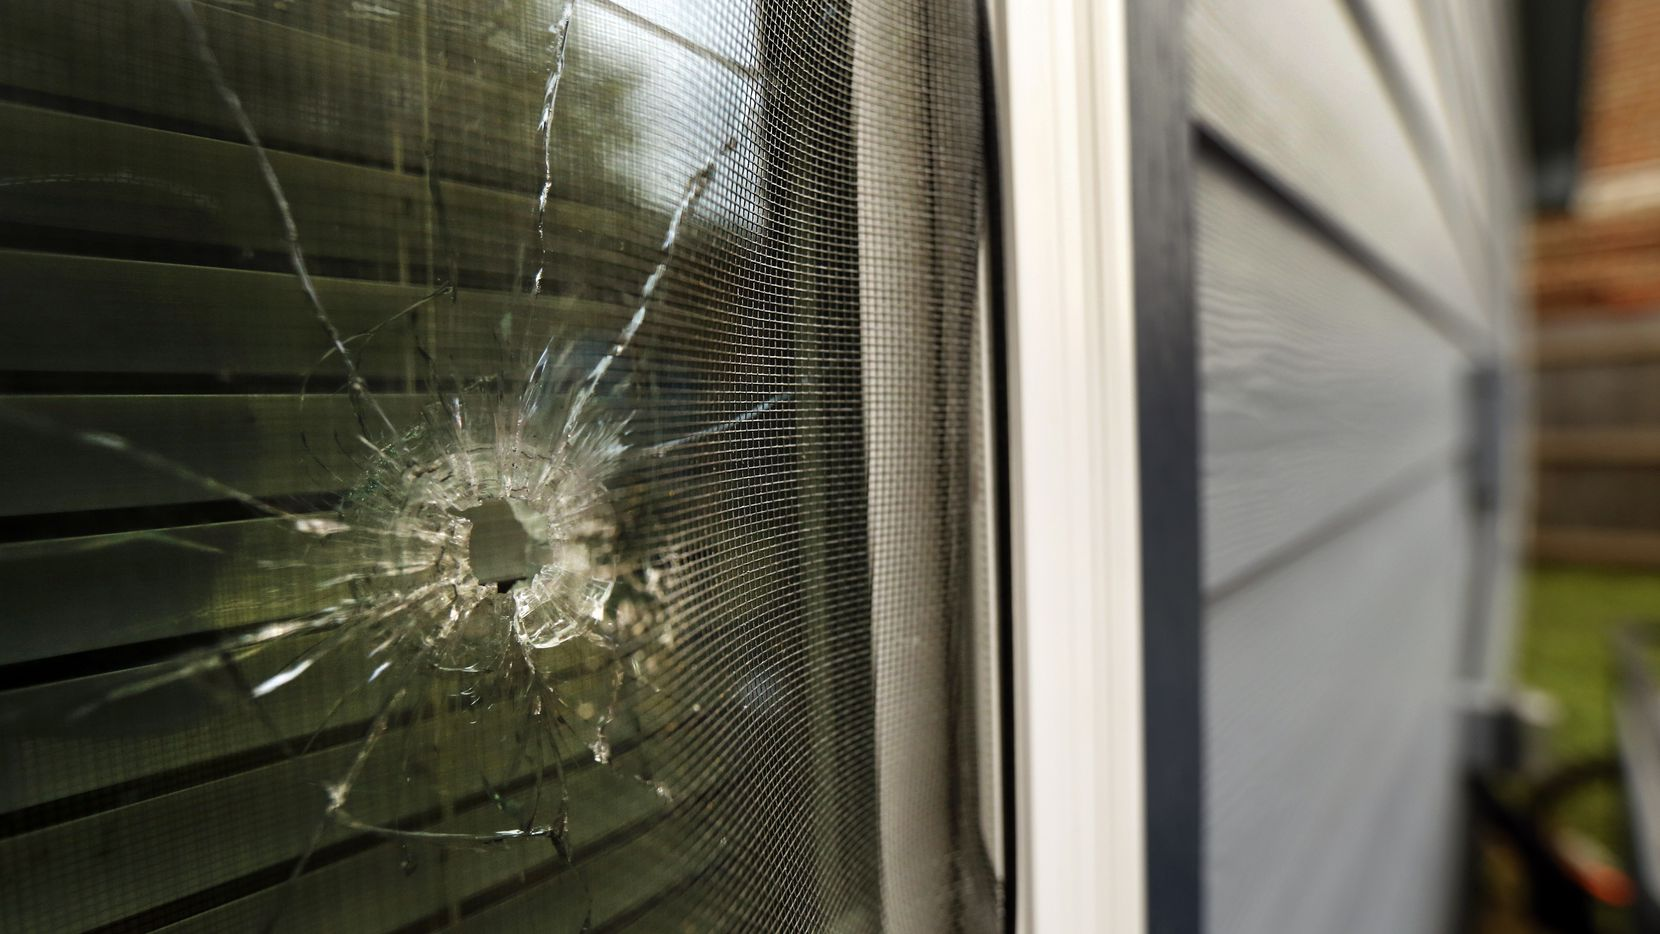 A bullet hole from the police officer's shot is seen in the rear window of Atatiana Jefferson's home on E. Allen Ave in Fort Worth, Tuesday, October 15, 2019 after former Fort Worth police officer Aaron Dean shot into the home and killed Atatiana Jefferson last weekend.